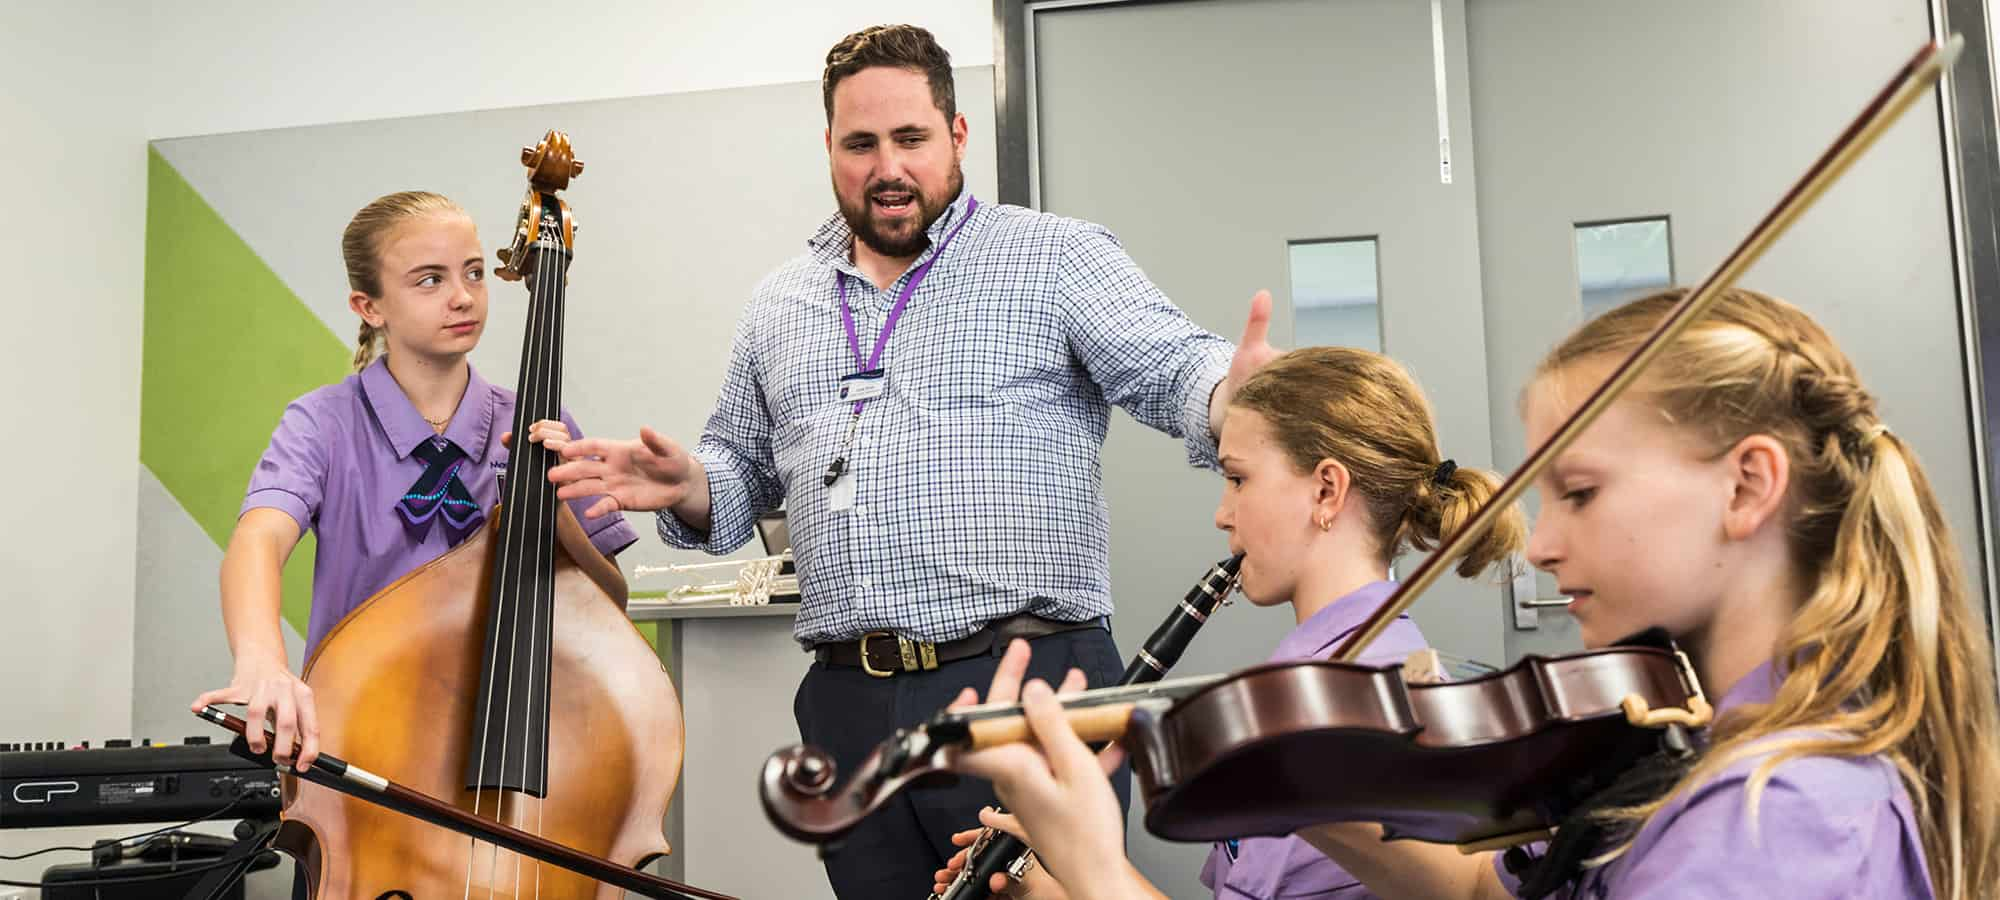 MacKillop Catholic College students play instruments with teacher